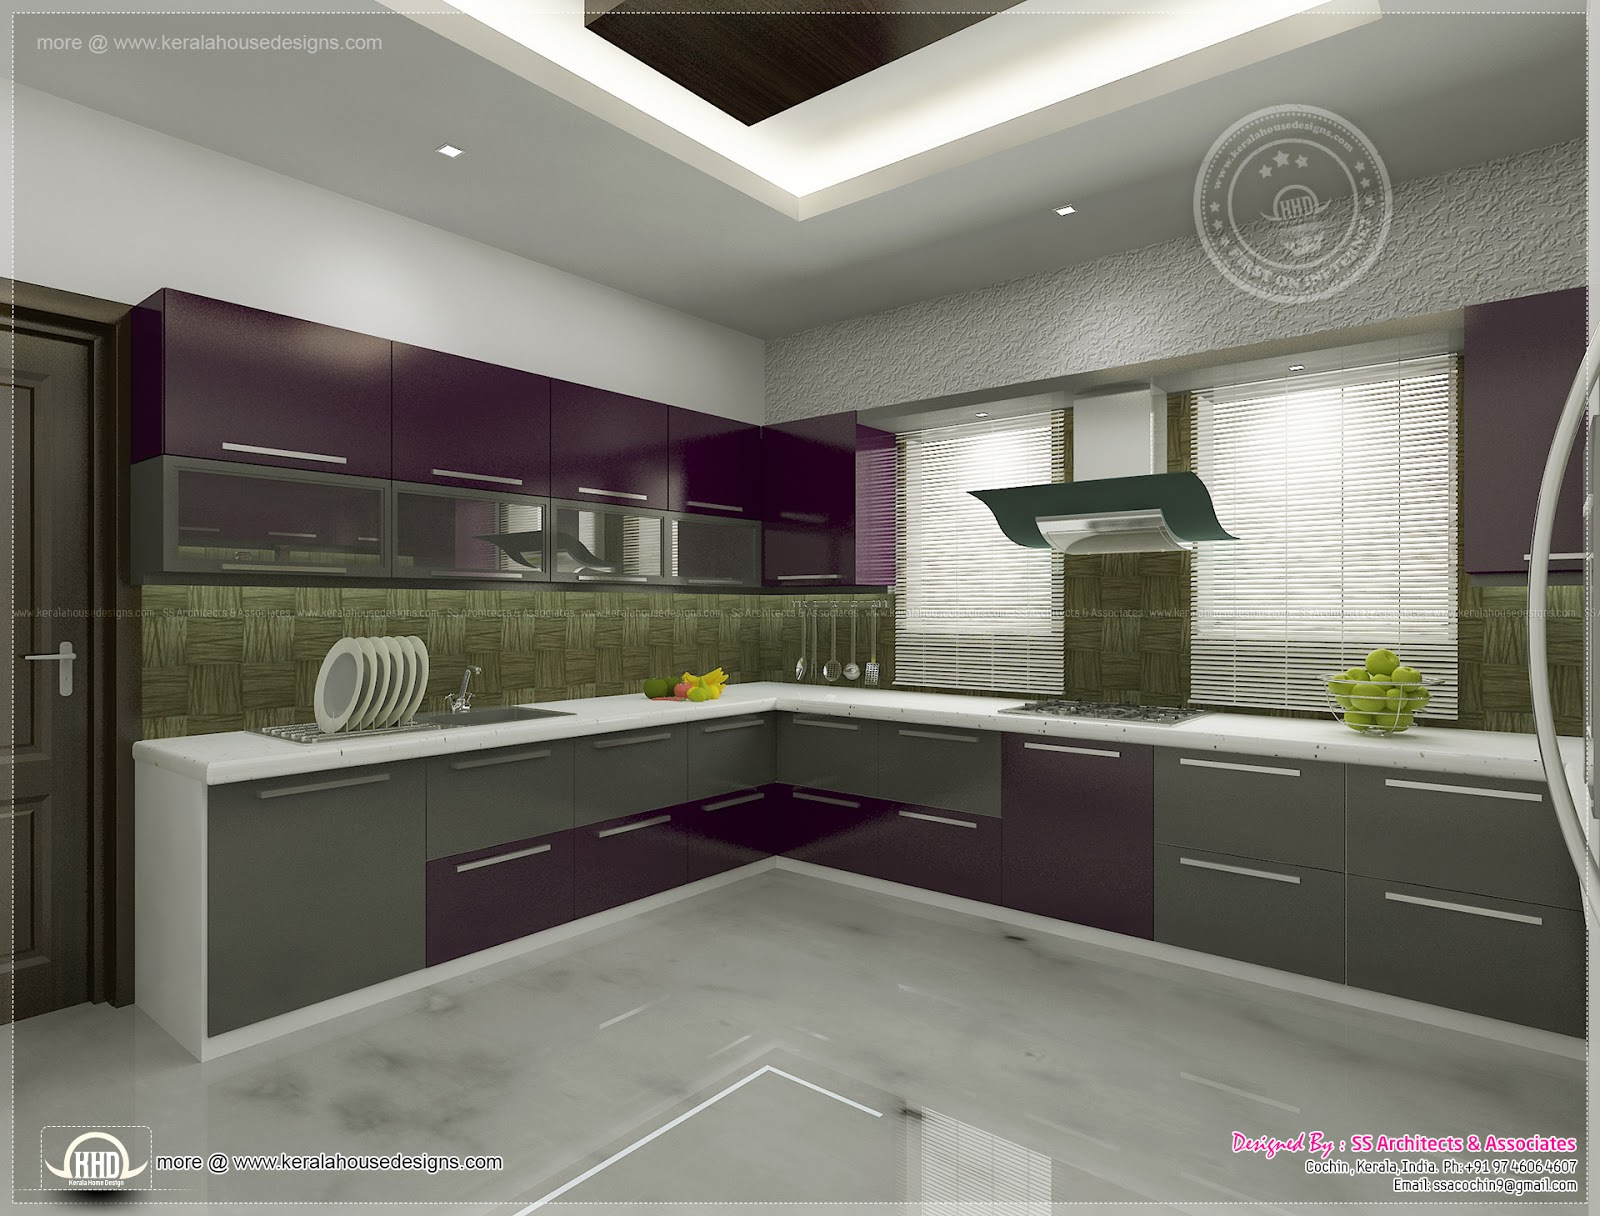 Kitchen interior views by ss architects cochin kerala for Interior designs kitchen